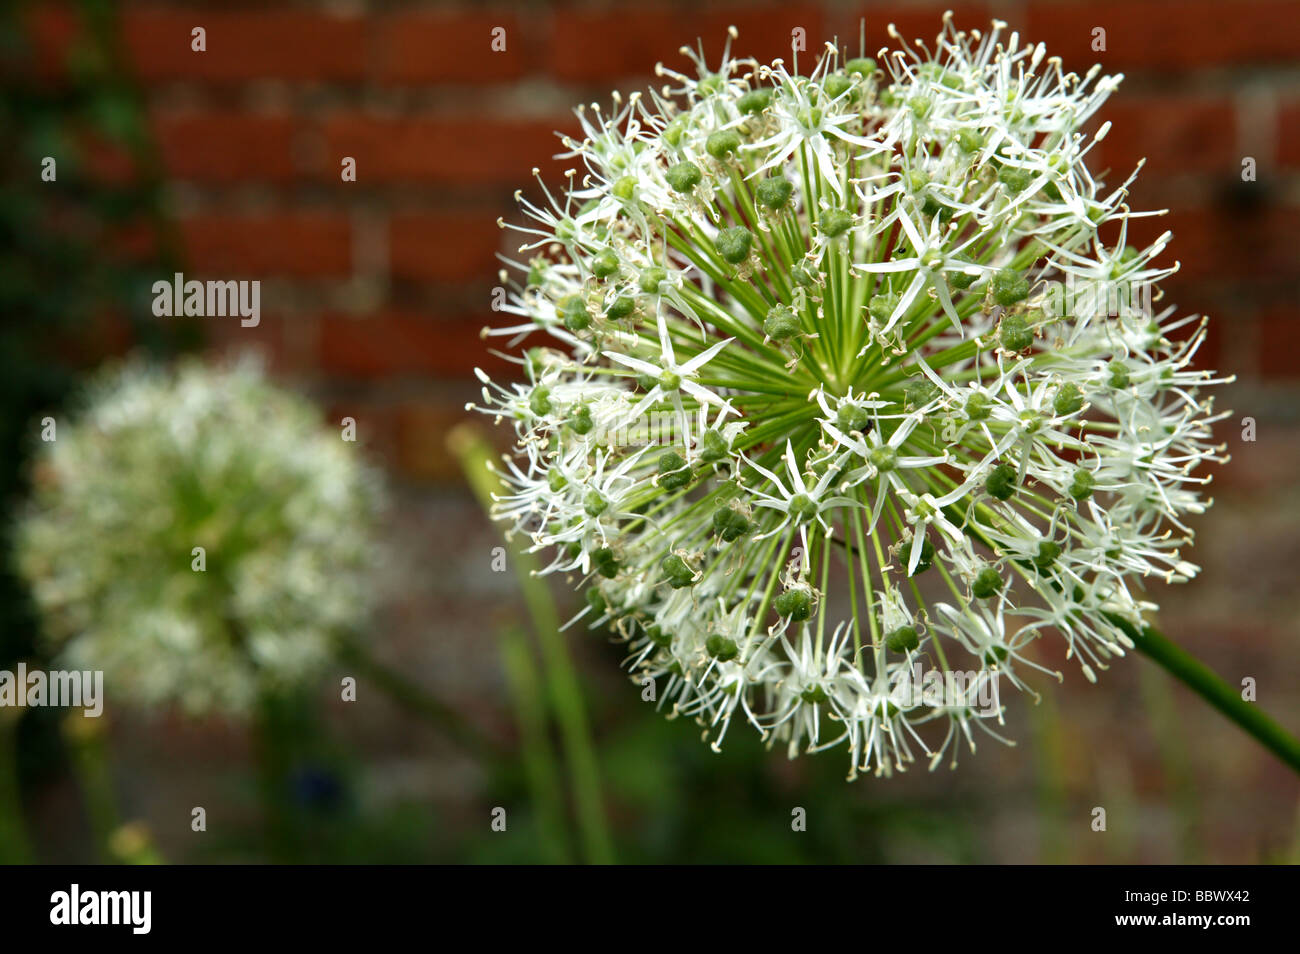 Beautiful summer garden scene in horizontal landscape format containing white bulbous flowers with fine focus and - Stock Image